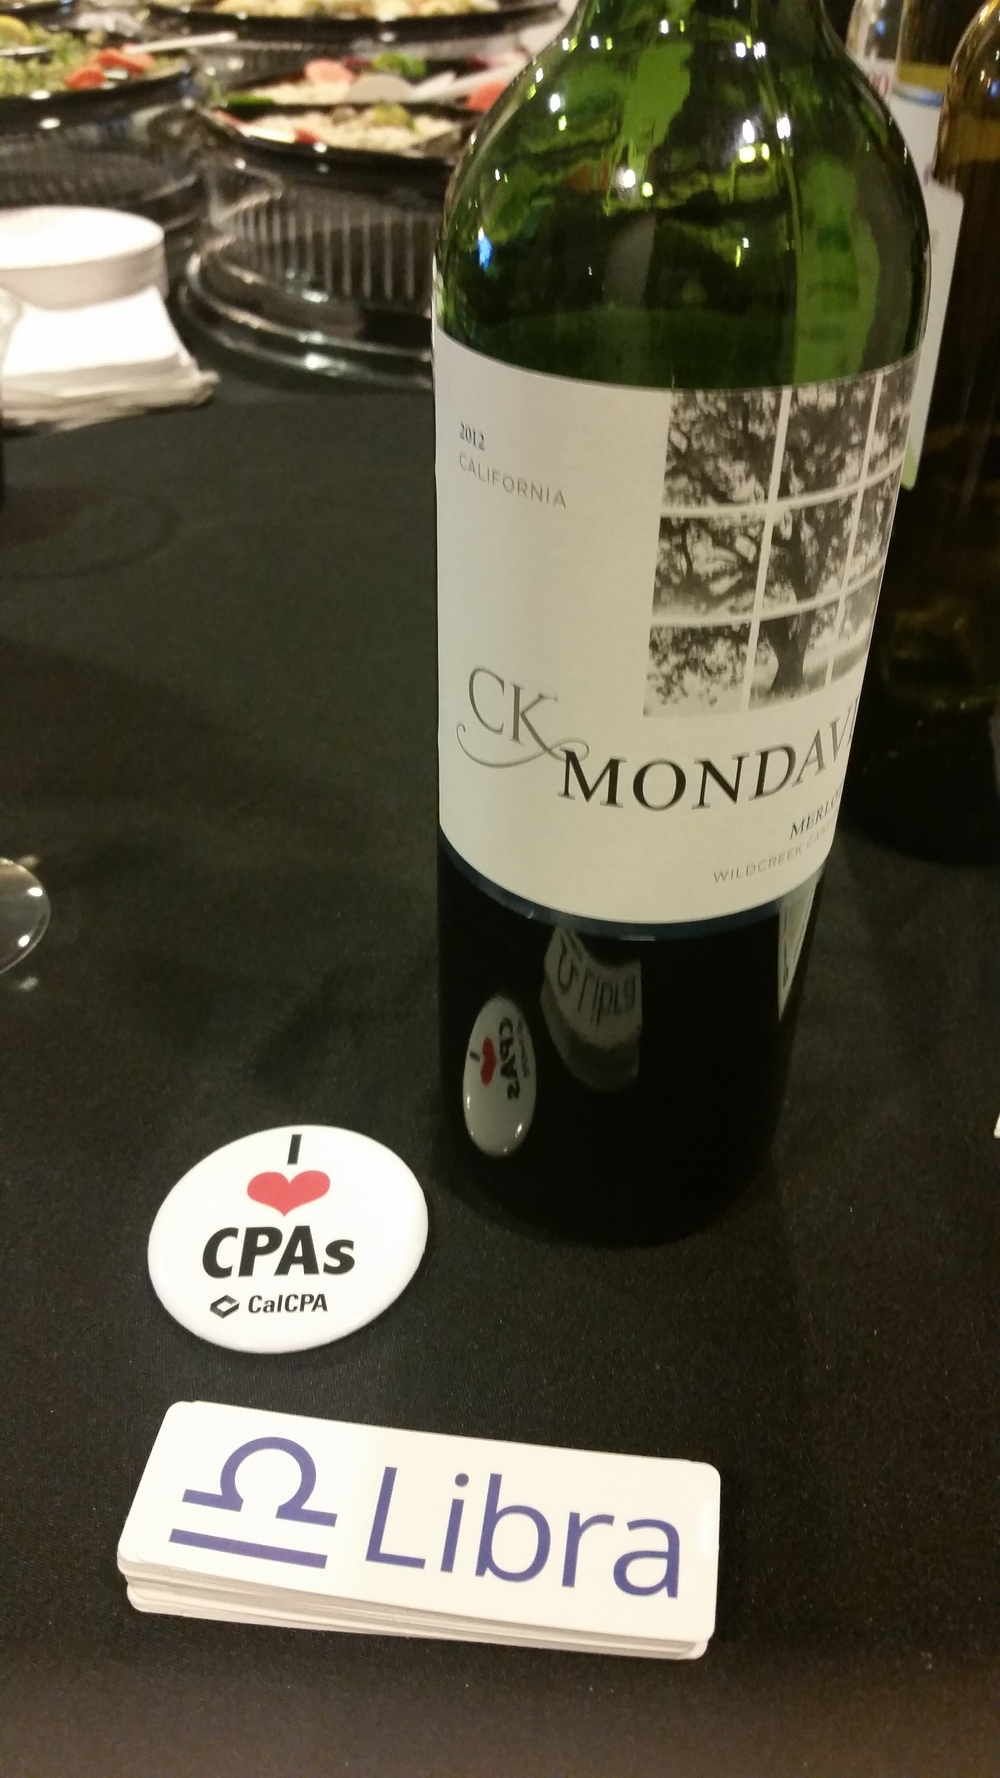 We do love CPAs, Libra and of course, wine!